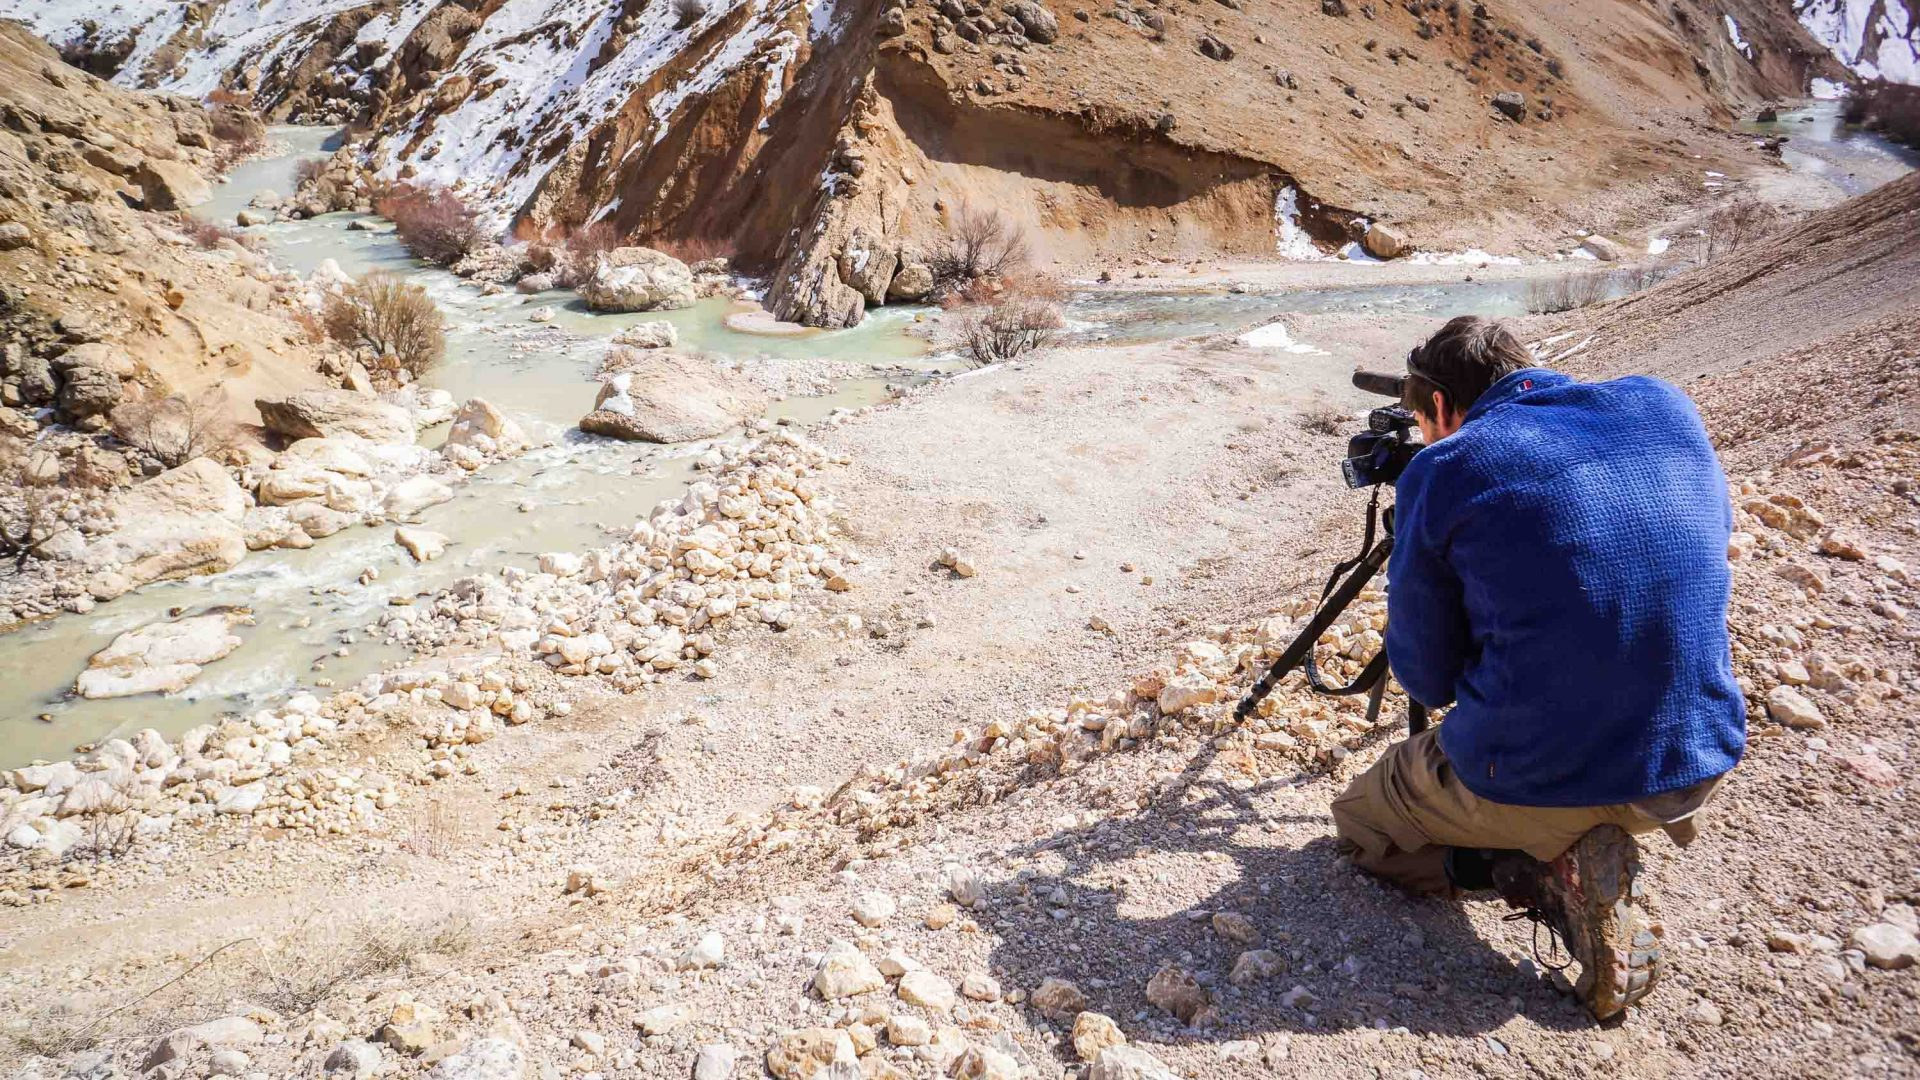 Leon McCarron filming by the confluence of Iran's Karun river where it's wide enough to paddle.